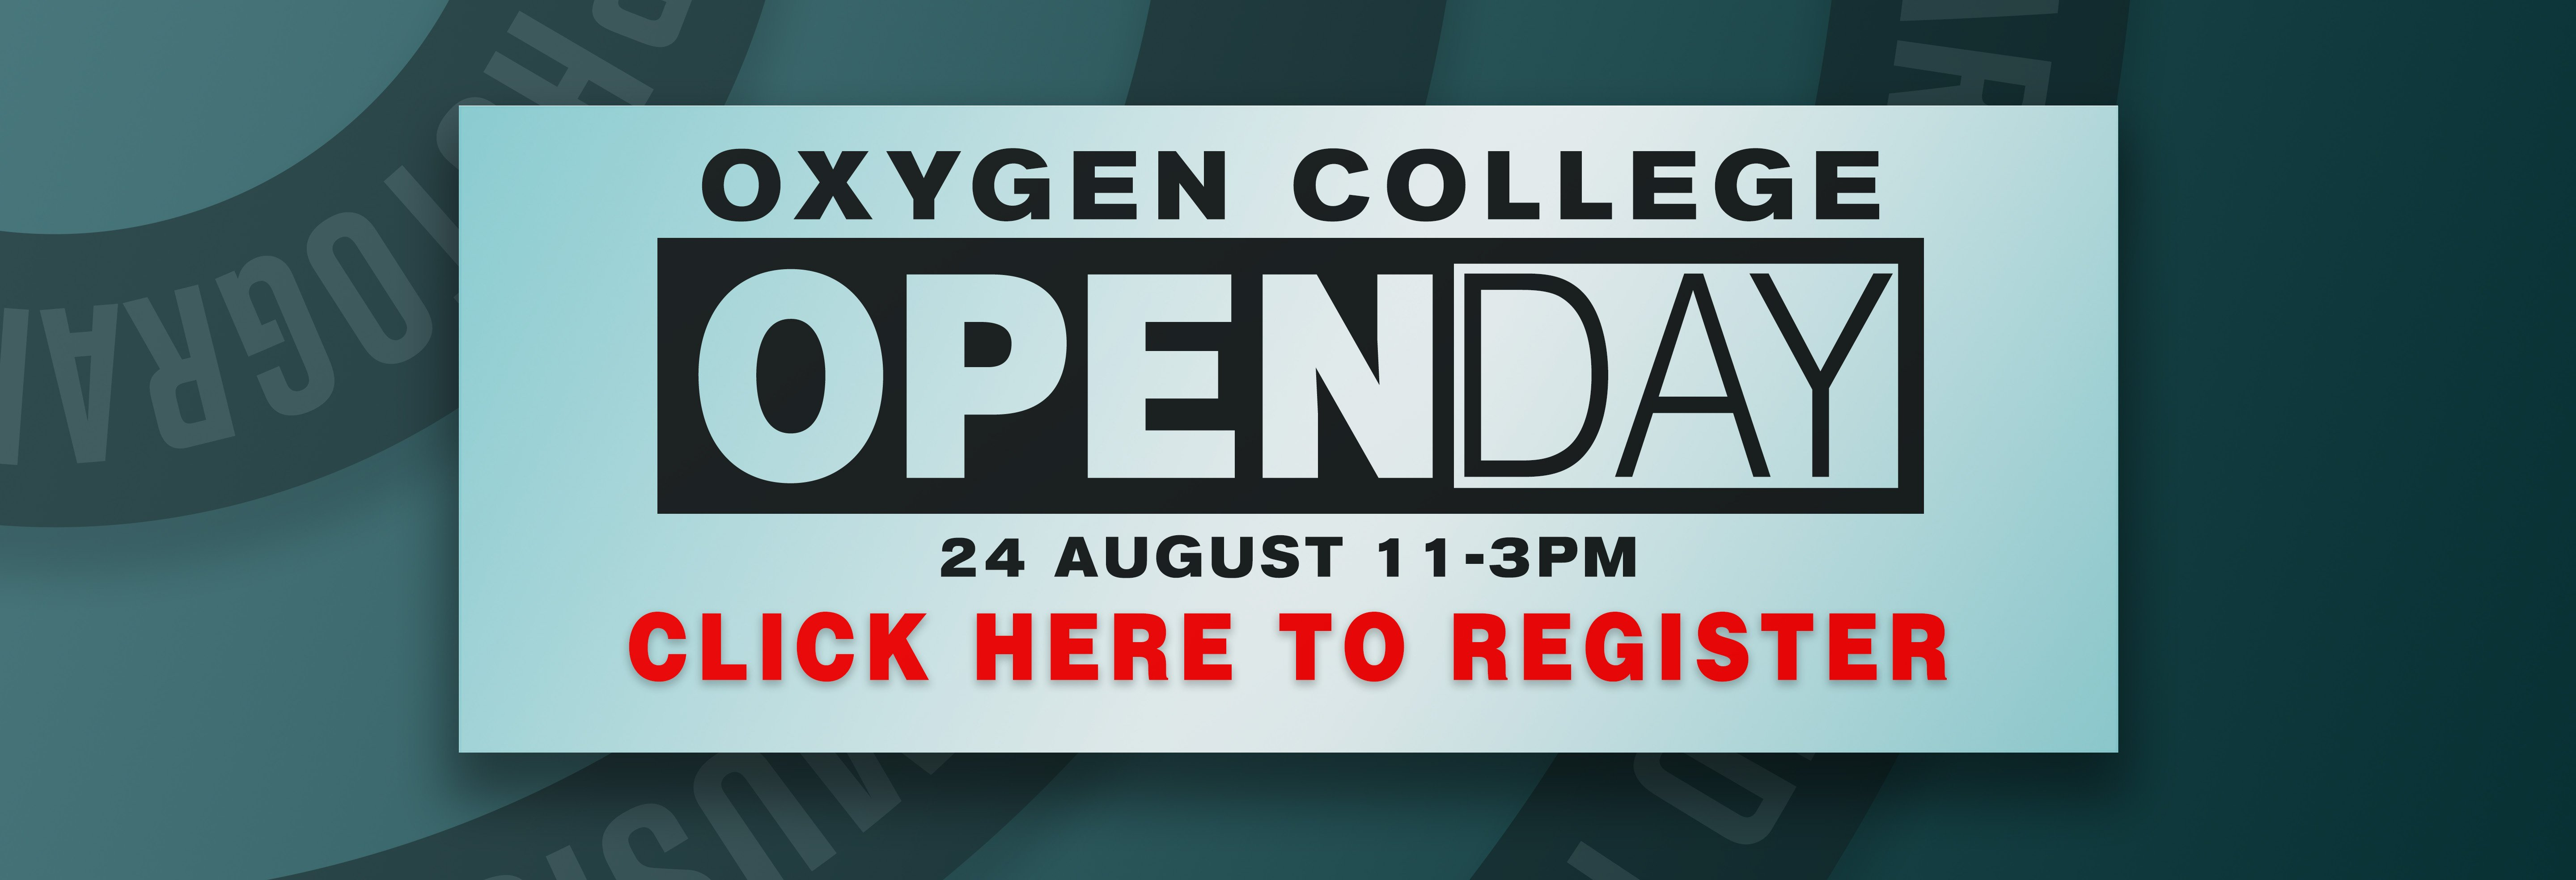 Home page - Click to see what Oxygen College is about! - Oxygen College